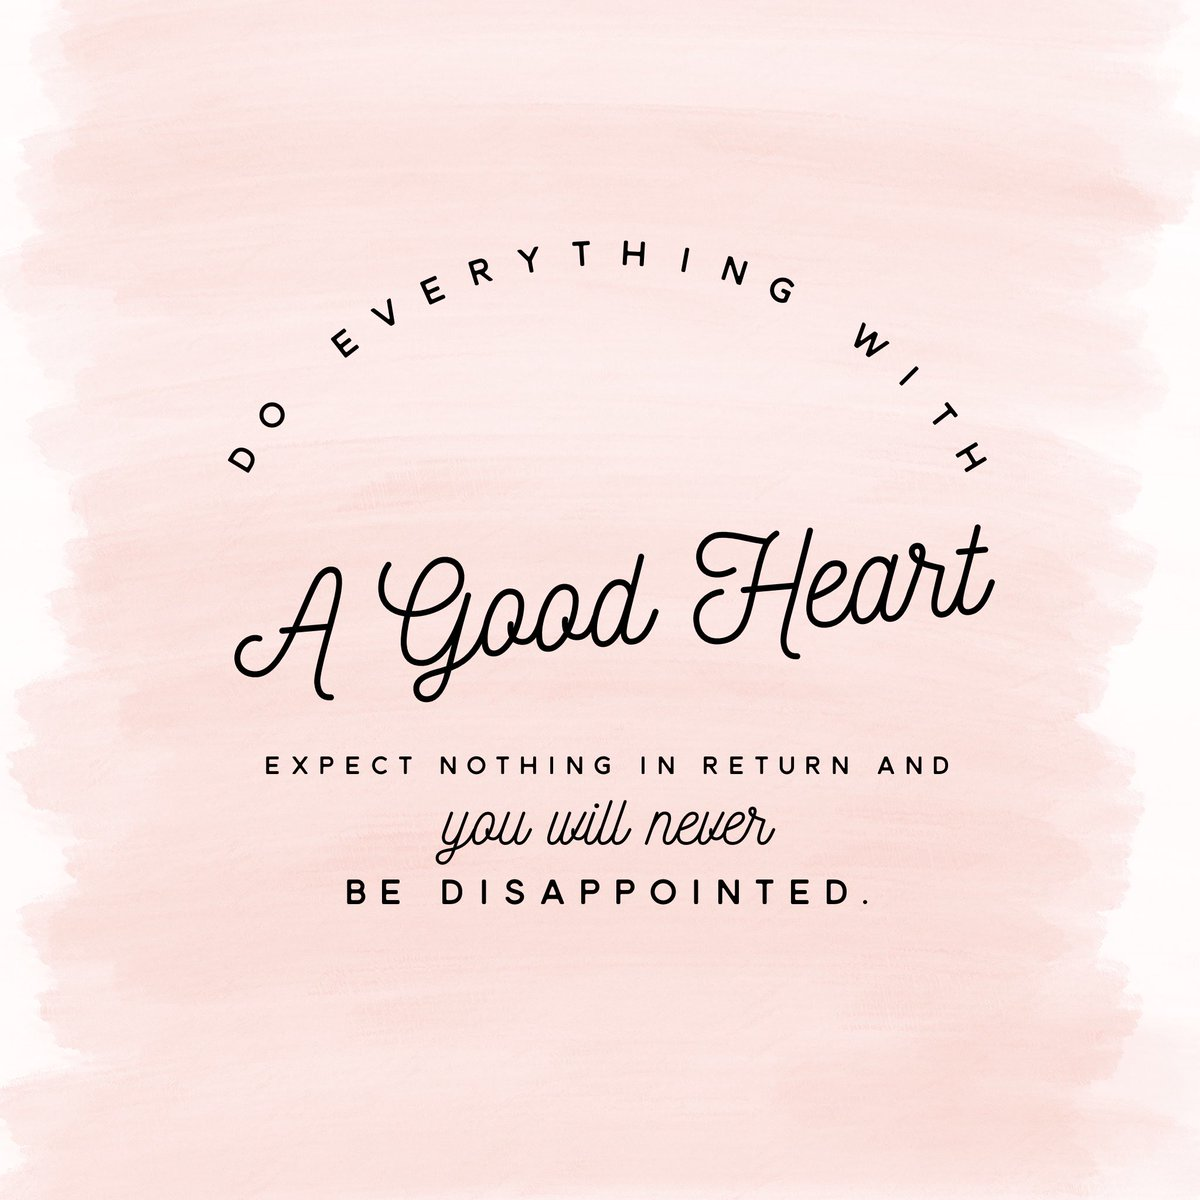 Ann Seid On Twitter Do Everything With A Good Heart Expect